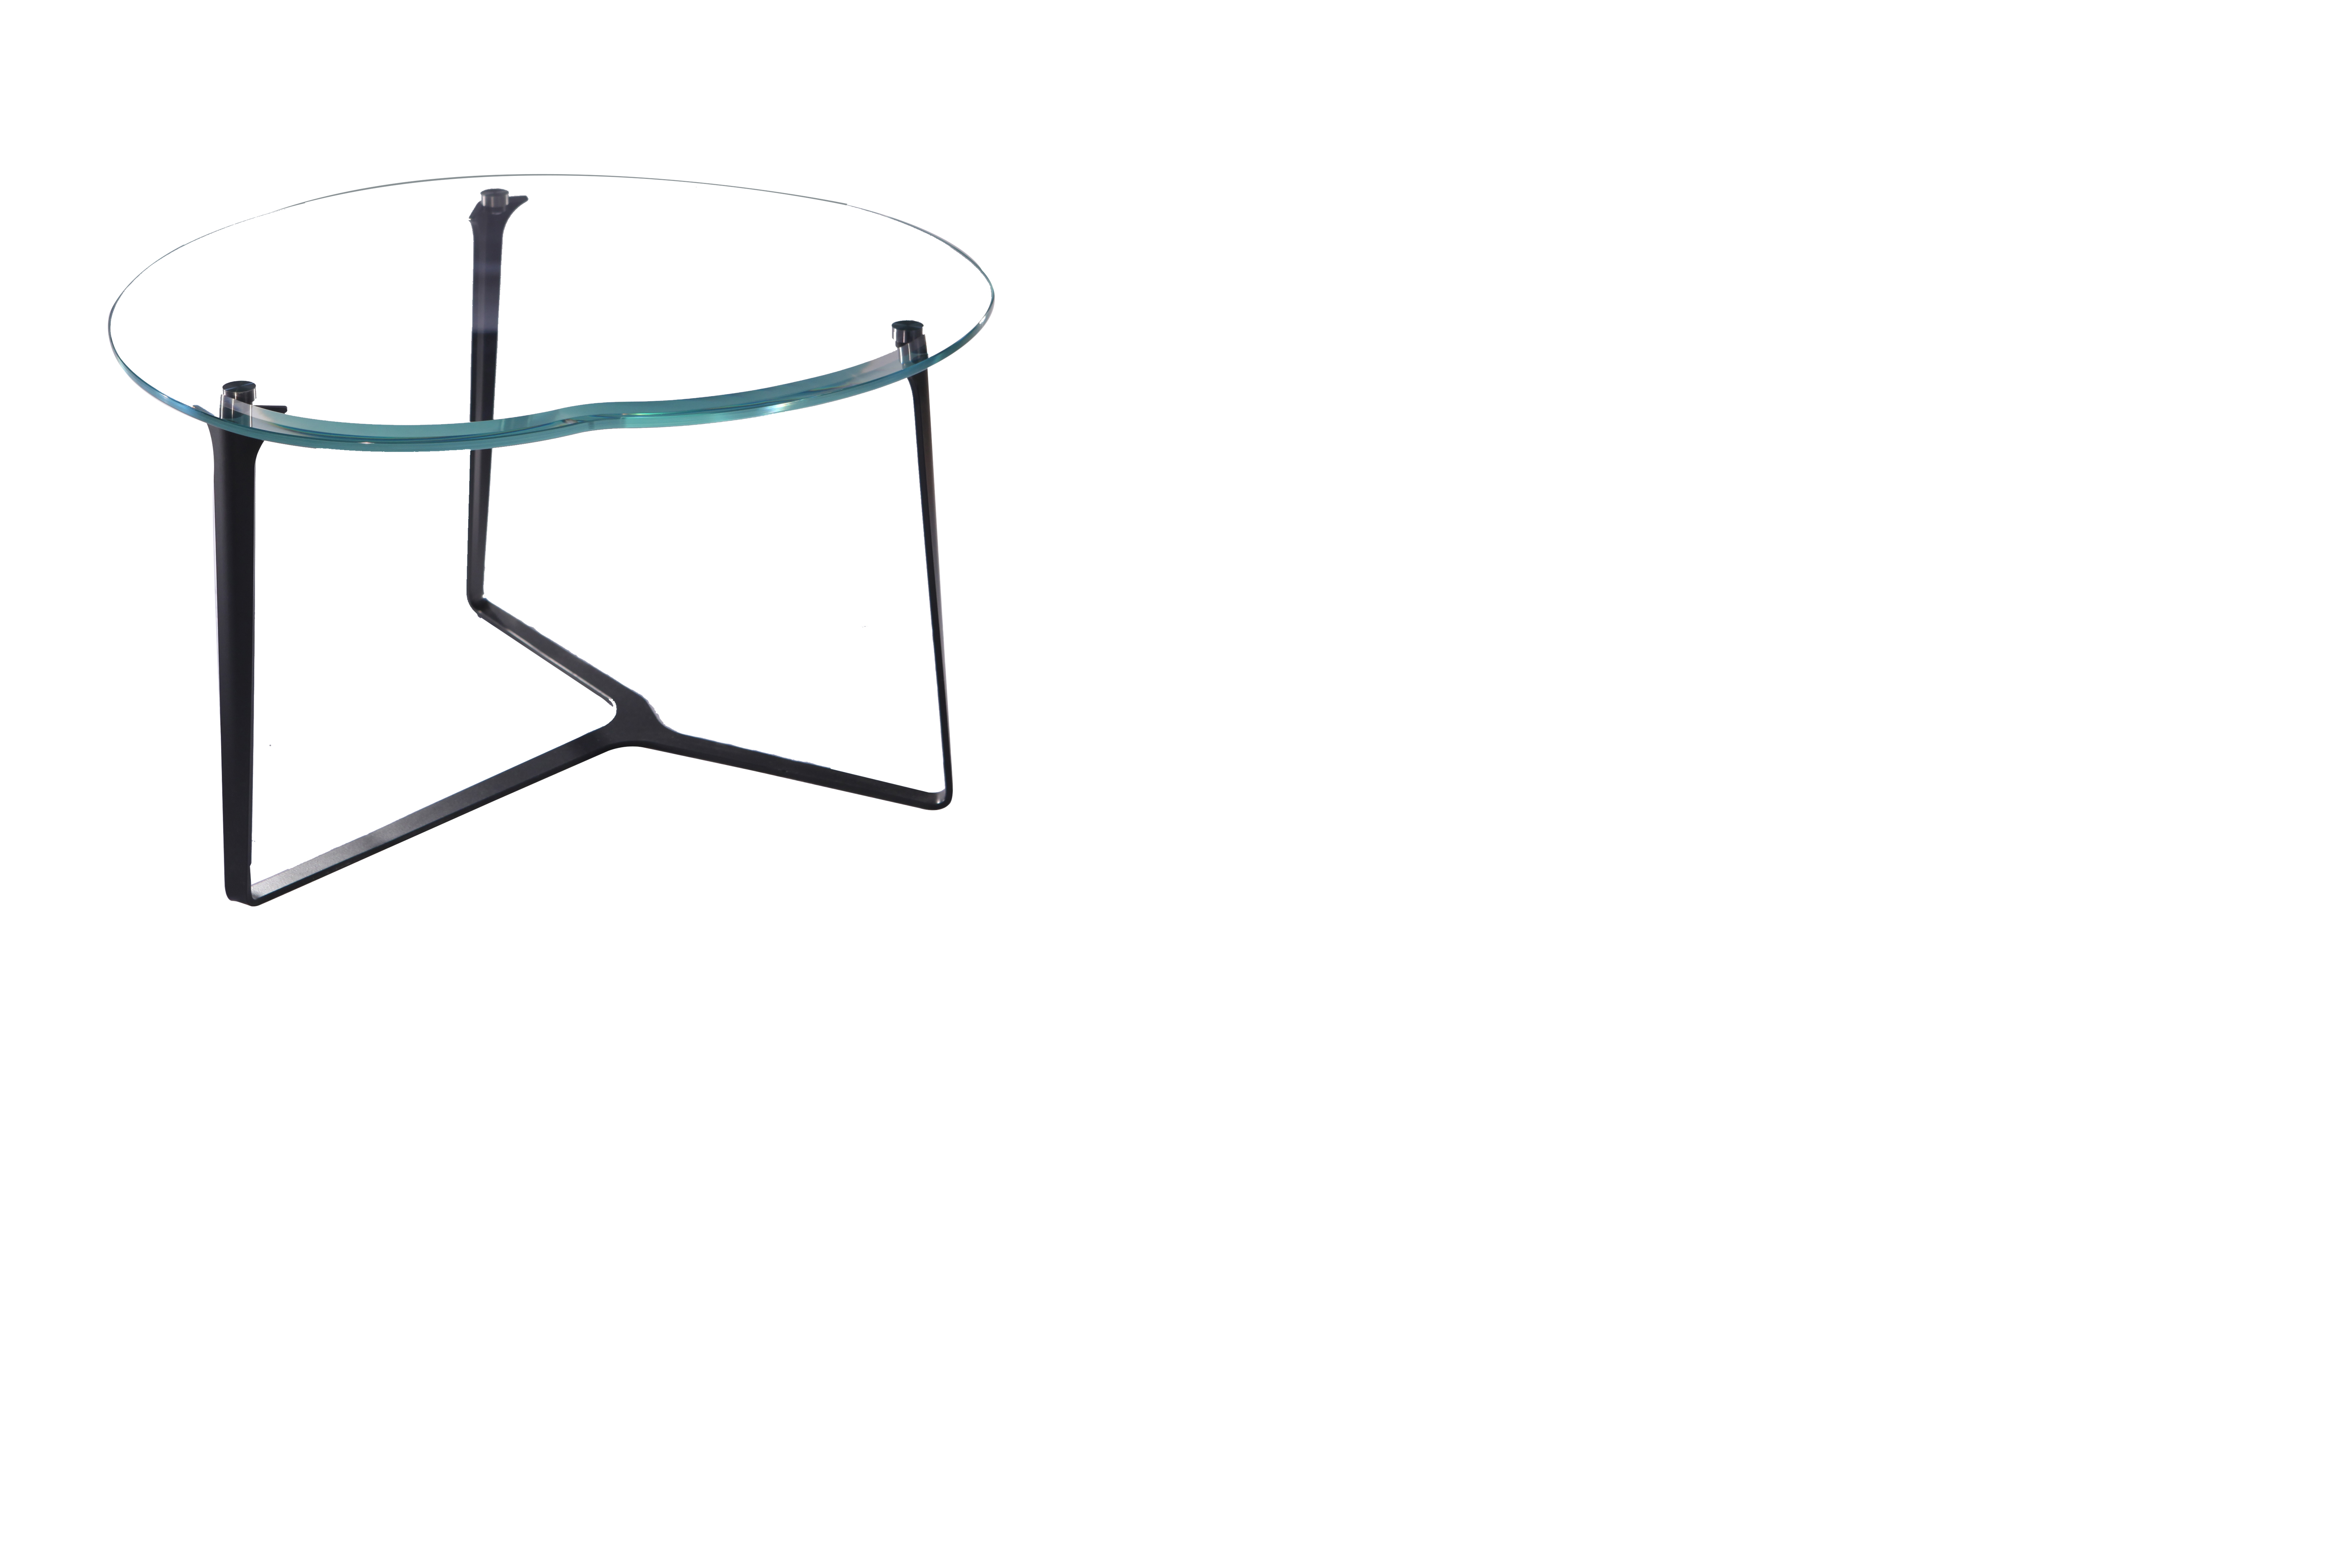 Apple crystal coffee table coffee table low and comfortable thin steel base tempered glass ultra clear made in Italy handmade by master craftsmen beautiful for luxury living rooms a product Greyge